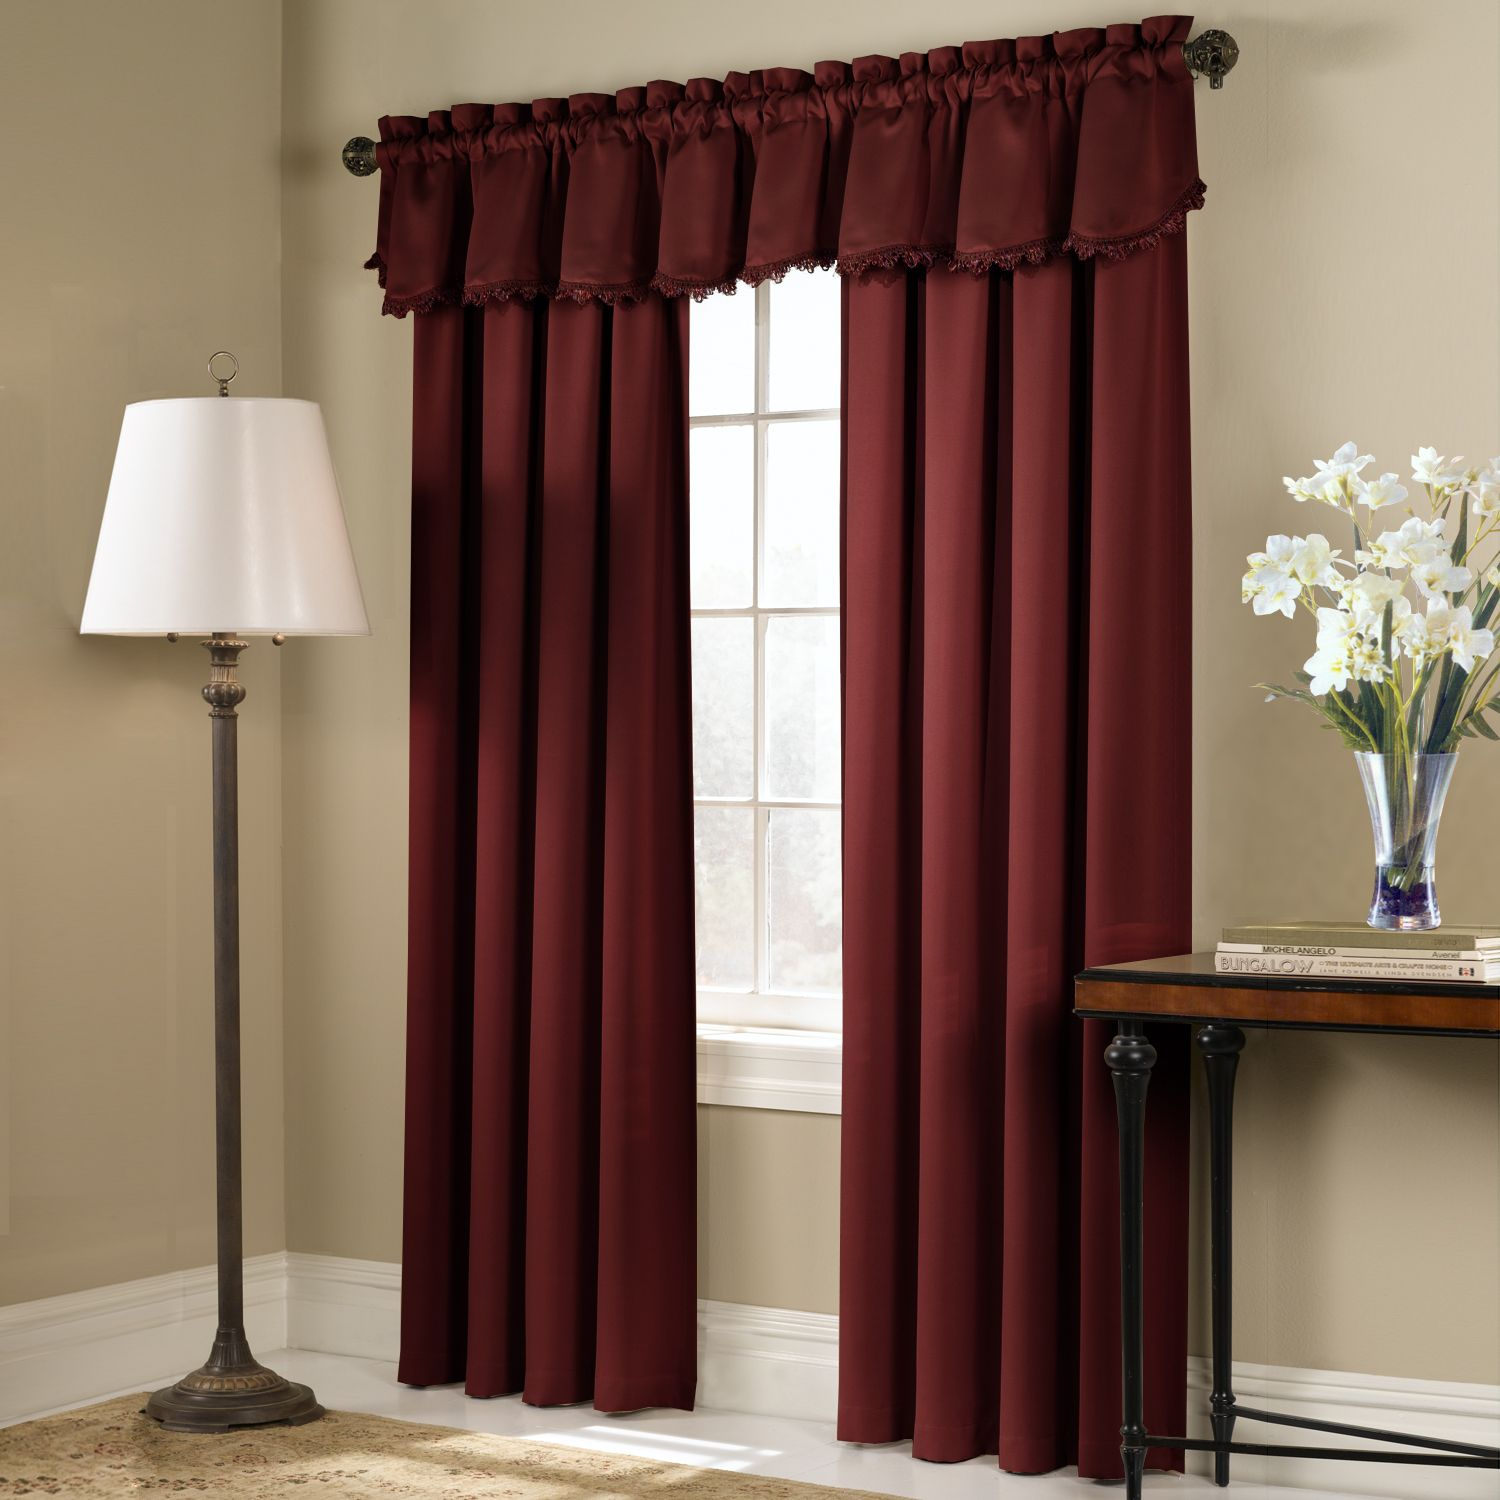 United Curtain Company Blackstone room darkening panel-available in gold,sage,black,chocolate,brick,blue & taupe